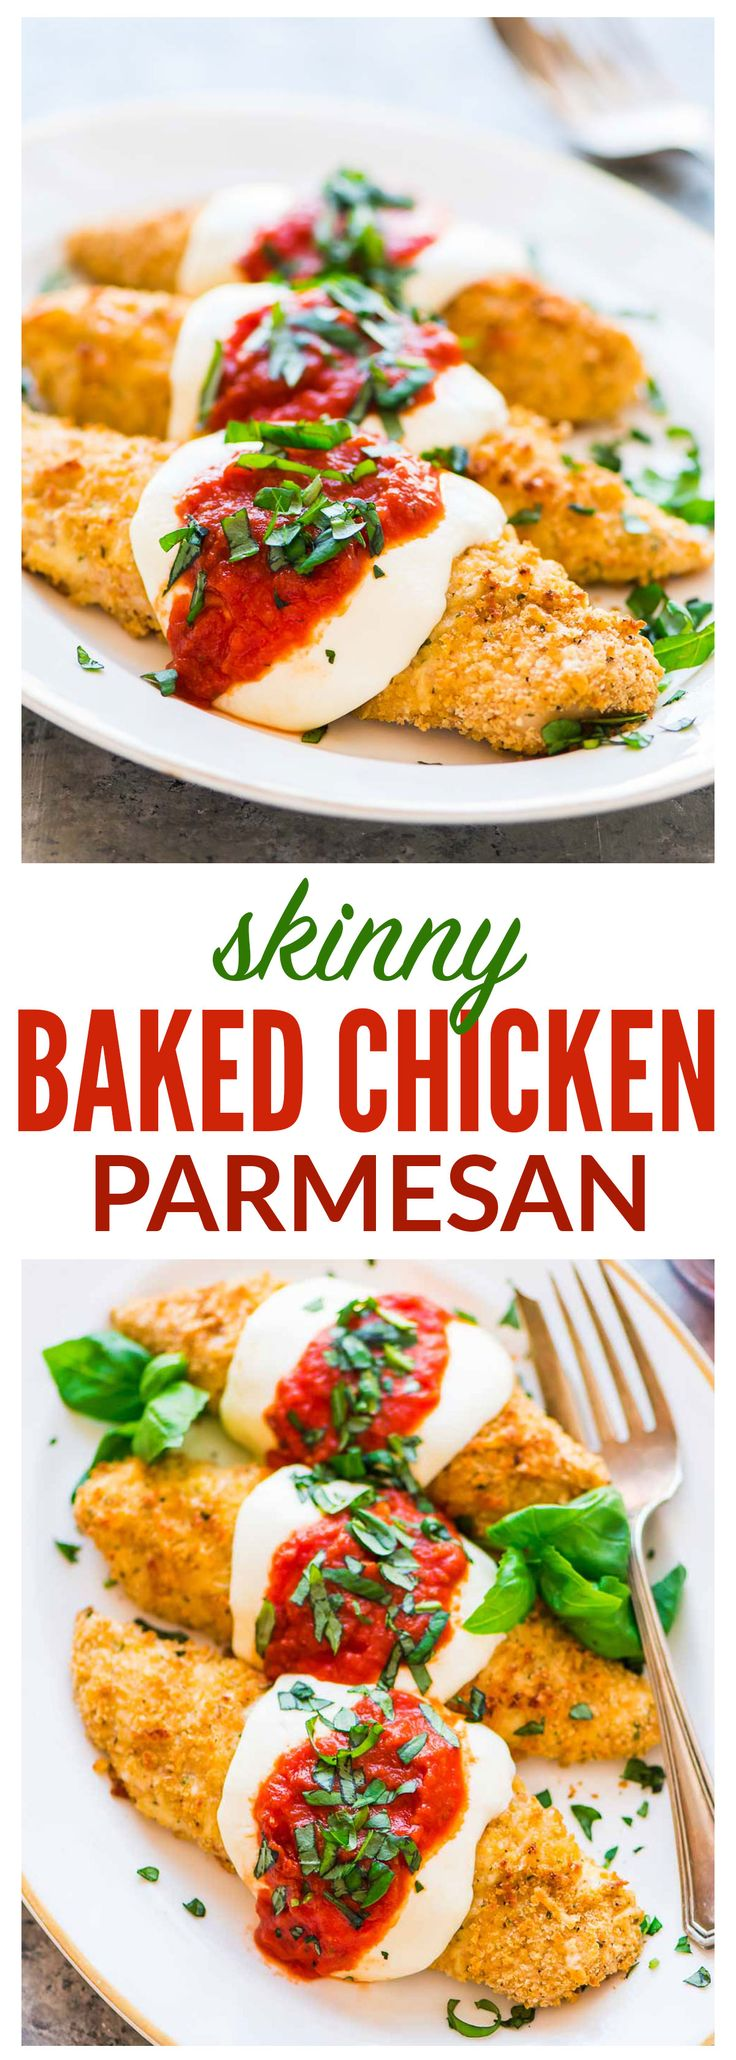 The BEST healthy baked Chicken Parmesan recipe, ready to eat in 30 minutes! This easy, oven baked chicken Parm recipe with Panko Parmesan crust is kid friendly and tastes better than the restaurant version! #chickenparmesan #baked #healthy